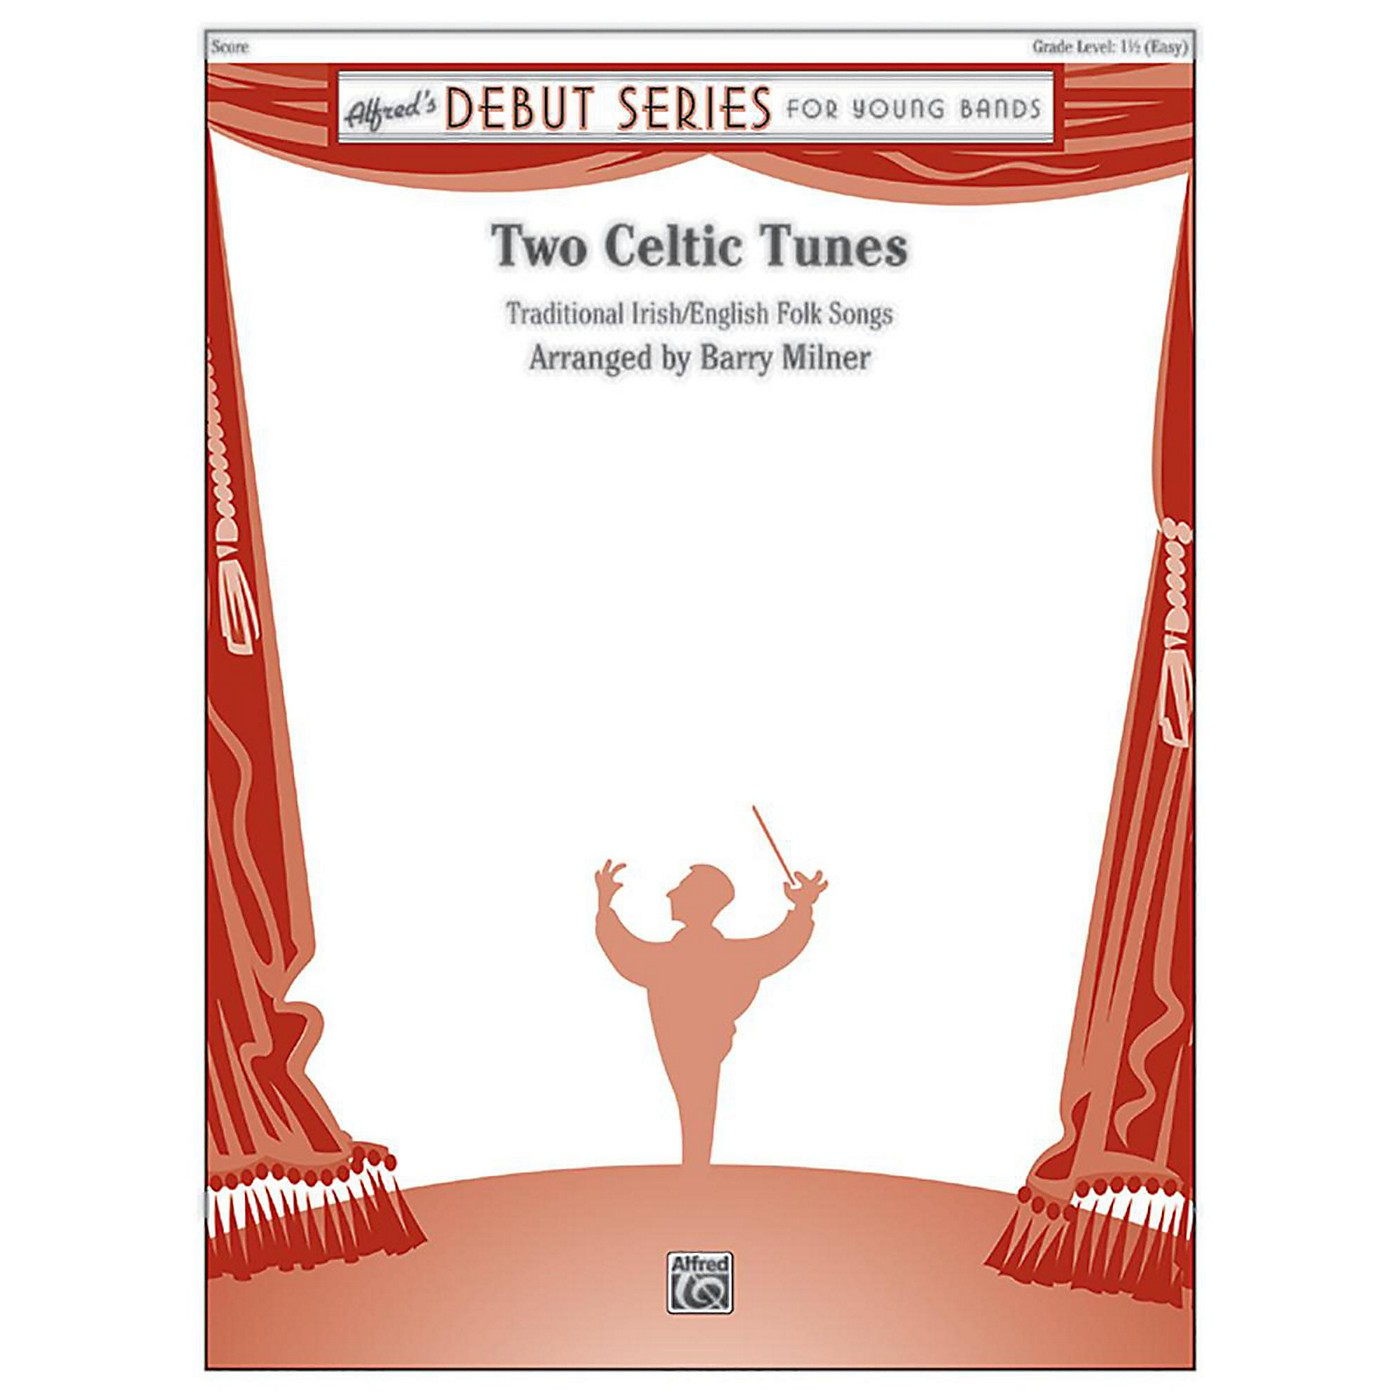 Alfred Two Celtic Tunes - Grade 1.5 (Easy) thumbnail